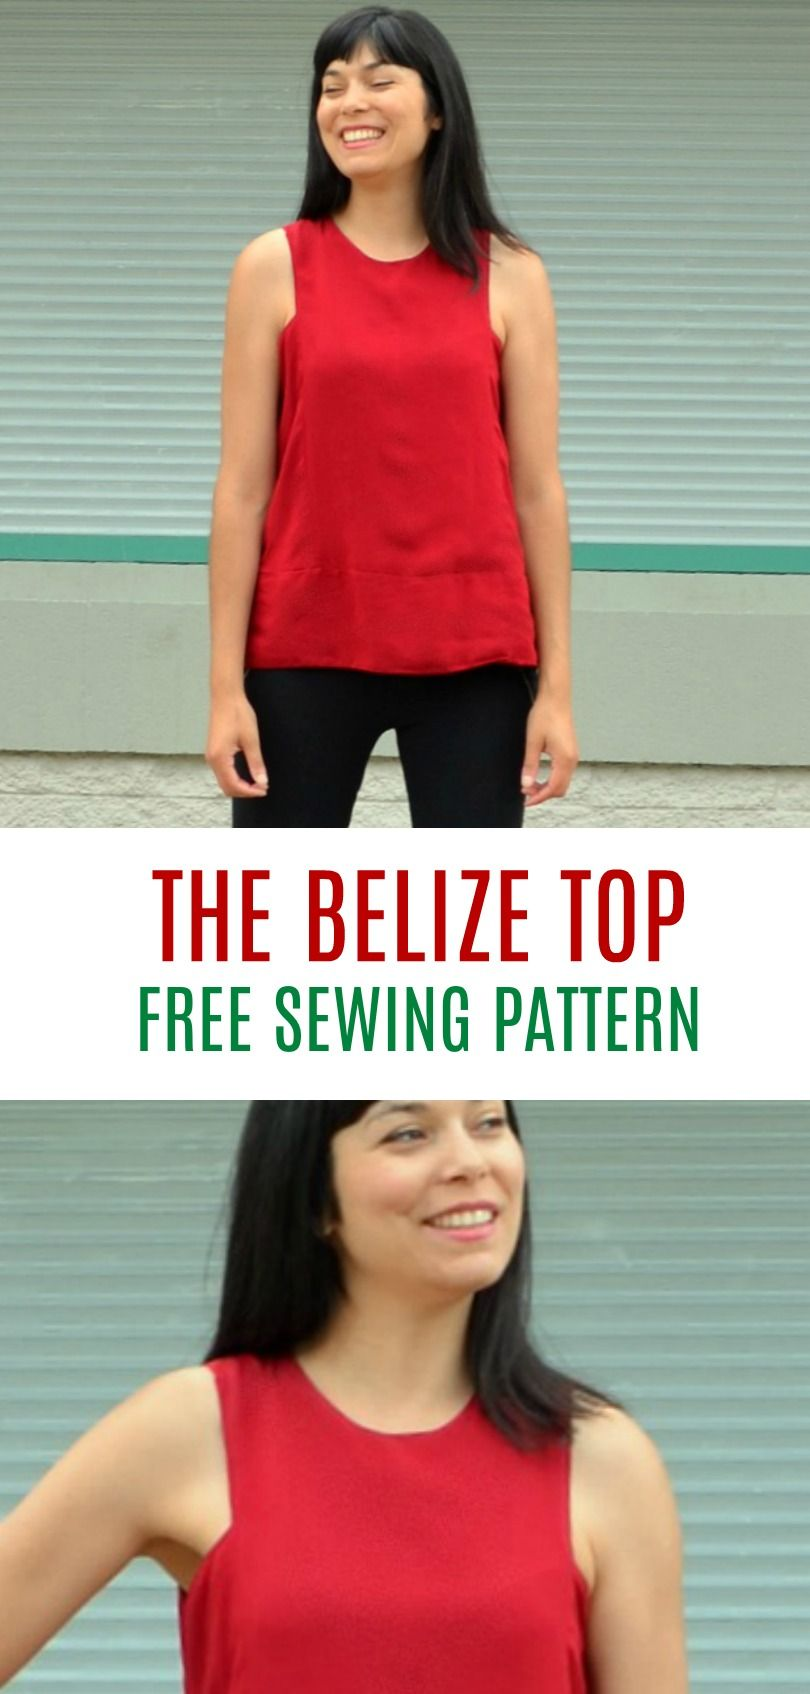 FREE SEWING PATTERN: The Belize Top and Dress PDF sewing pattern ...